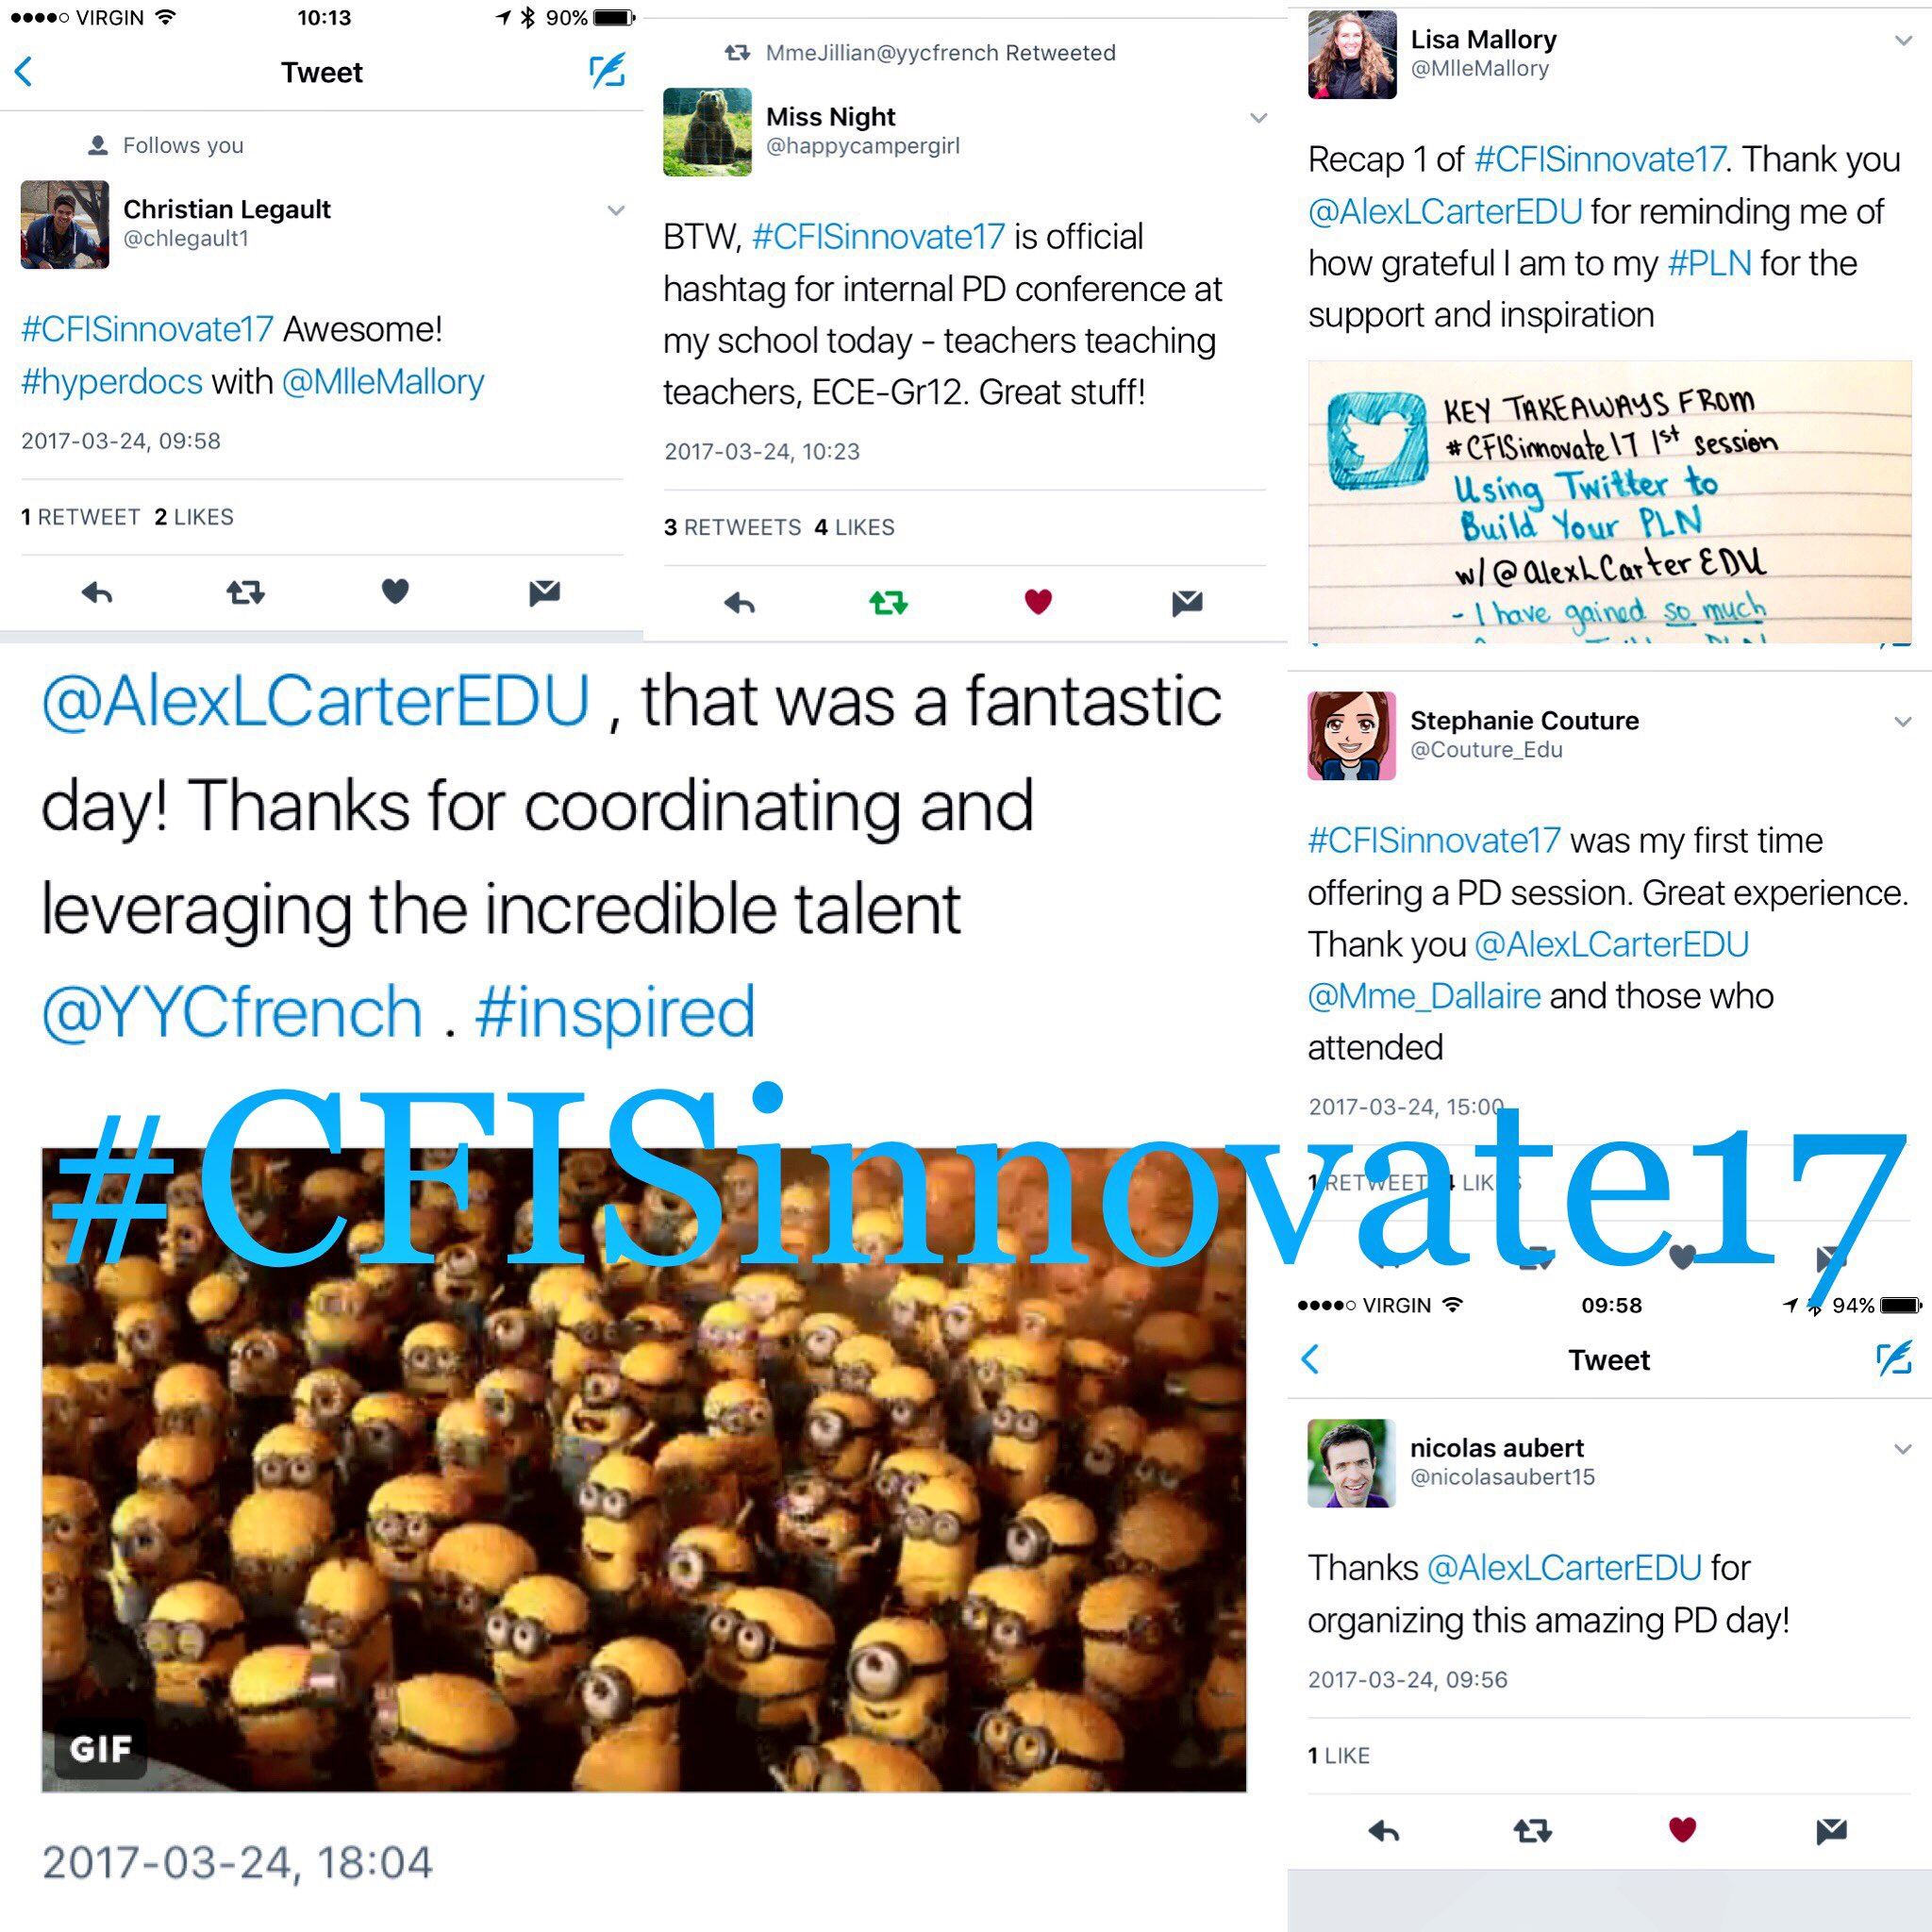 Reading through all the #CFISinnovate17 posts from yesterday & I am so honoured to work at such an amazing school with passionate educators https://t.co/RGcMcCs9aO